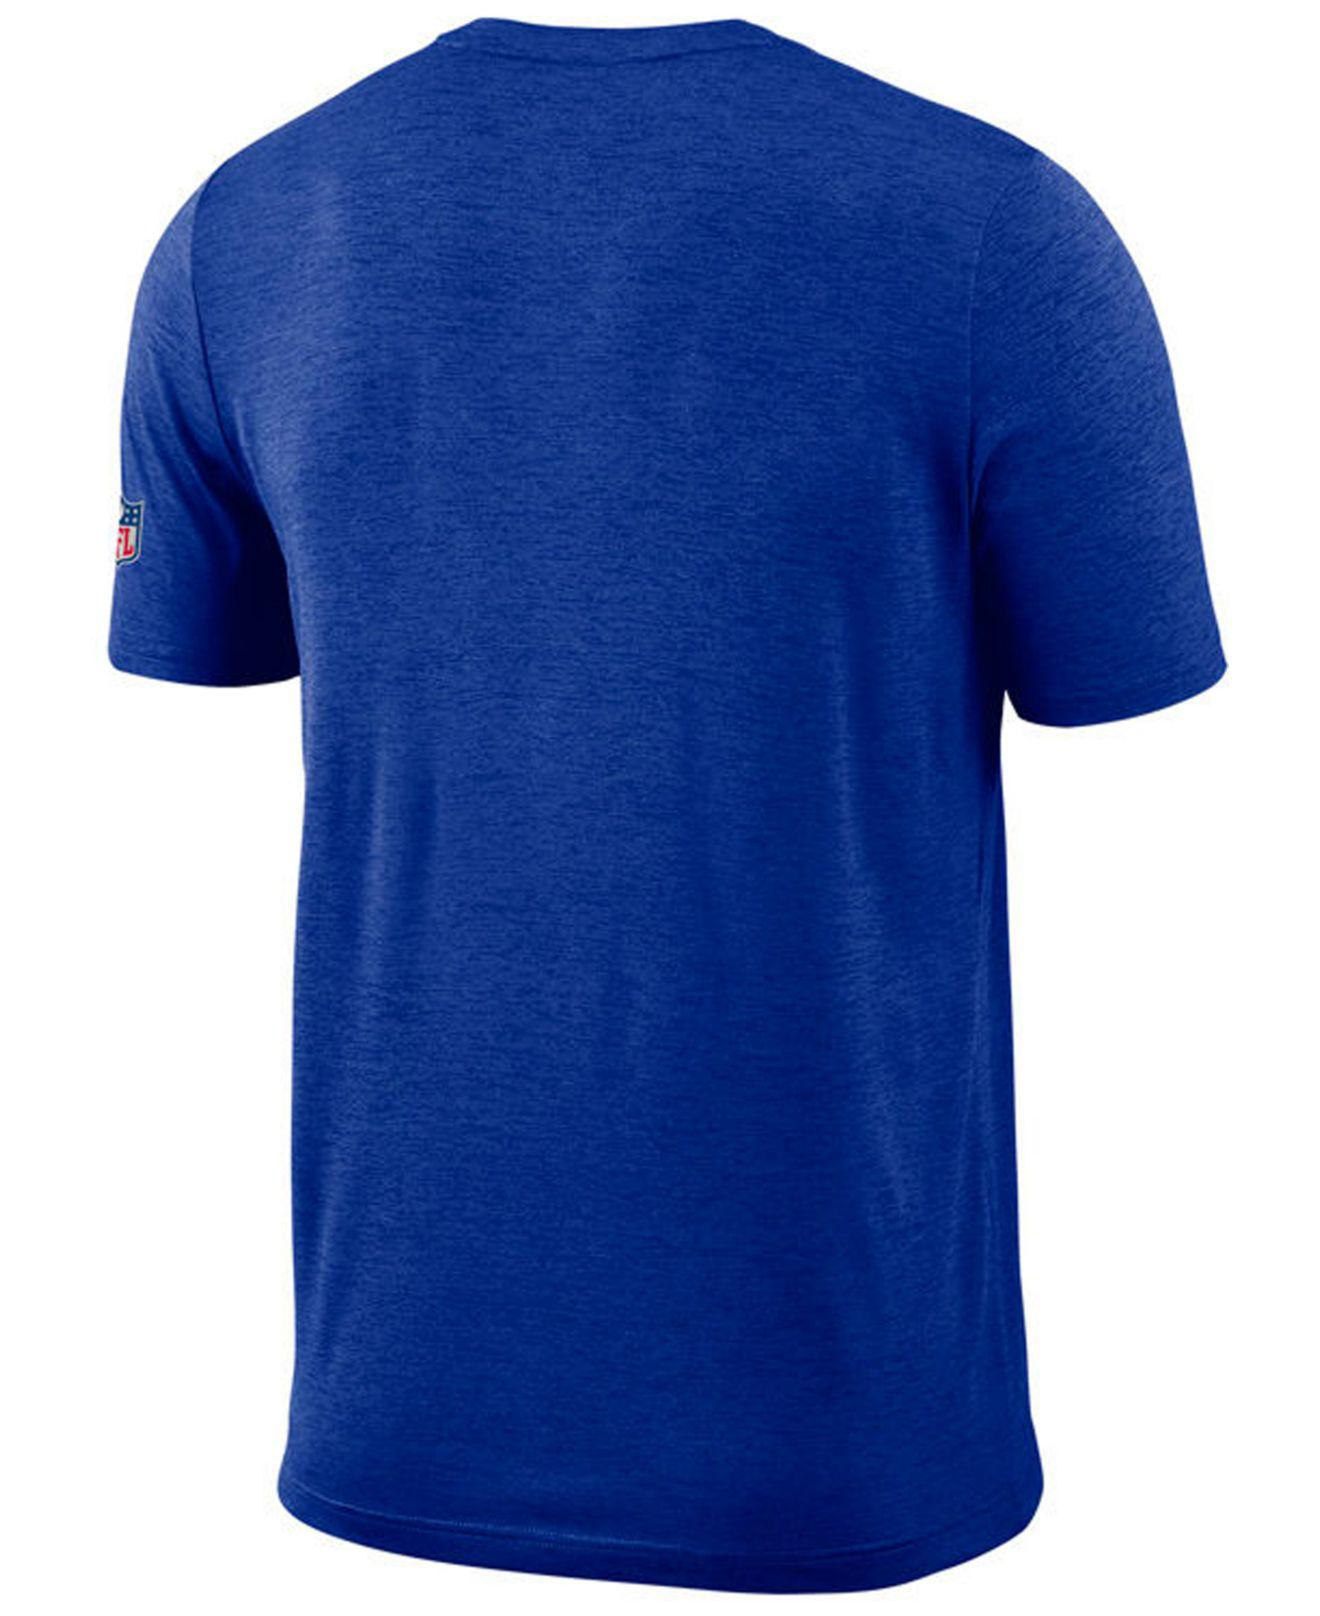 Lyst - Nike Los Angeles Rams Coaches T-shirt in Blue for Men 92002f089